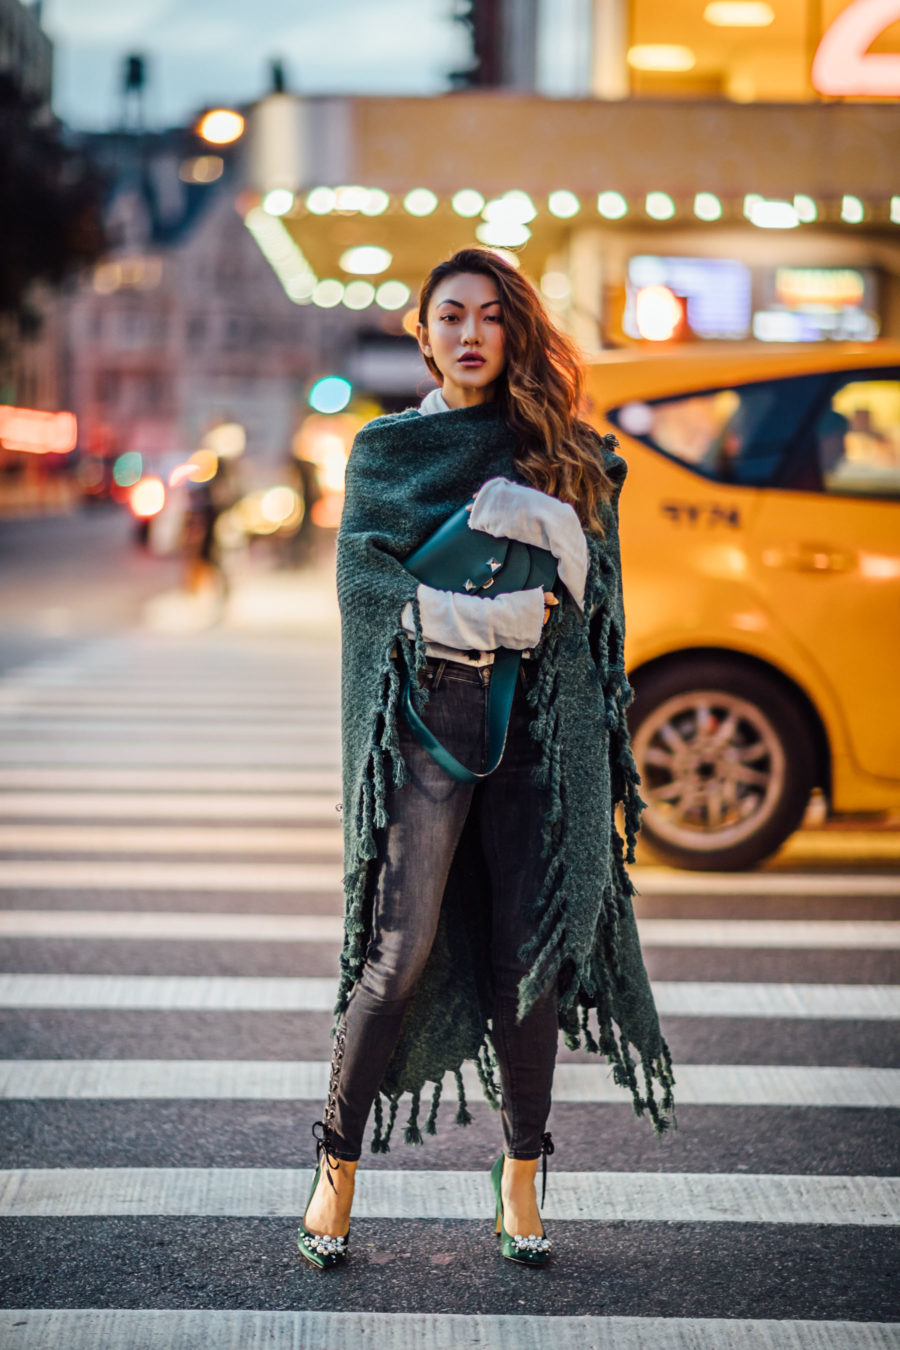 cozy chic items, fringe poncho, blanket scarf, Fringe Kimono, Lace up jeans, embellished pumps, Jessica wang, winter outfits, stylish winter outfit, fashion blogger, street style, winter street style, green satin pumps, nine west heels, fringe details, asian blogger, salar bag, green outfits // Notjessfashion